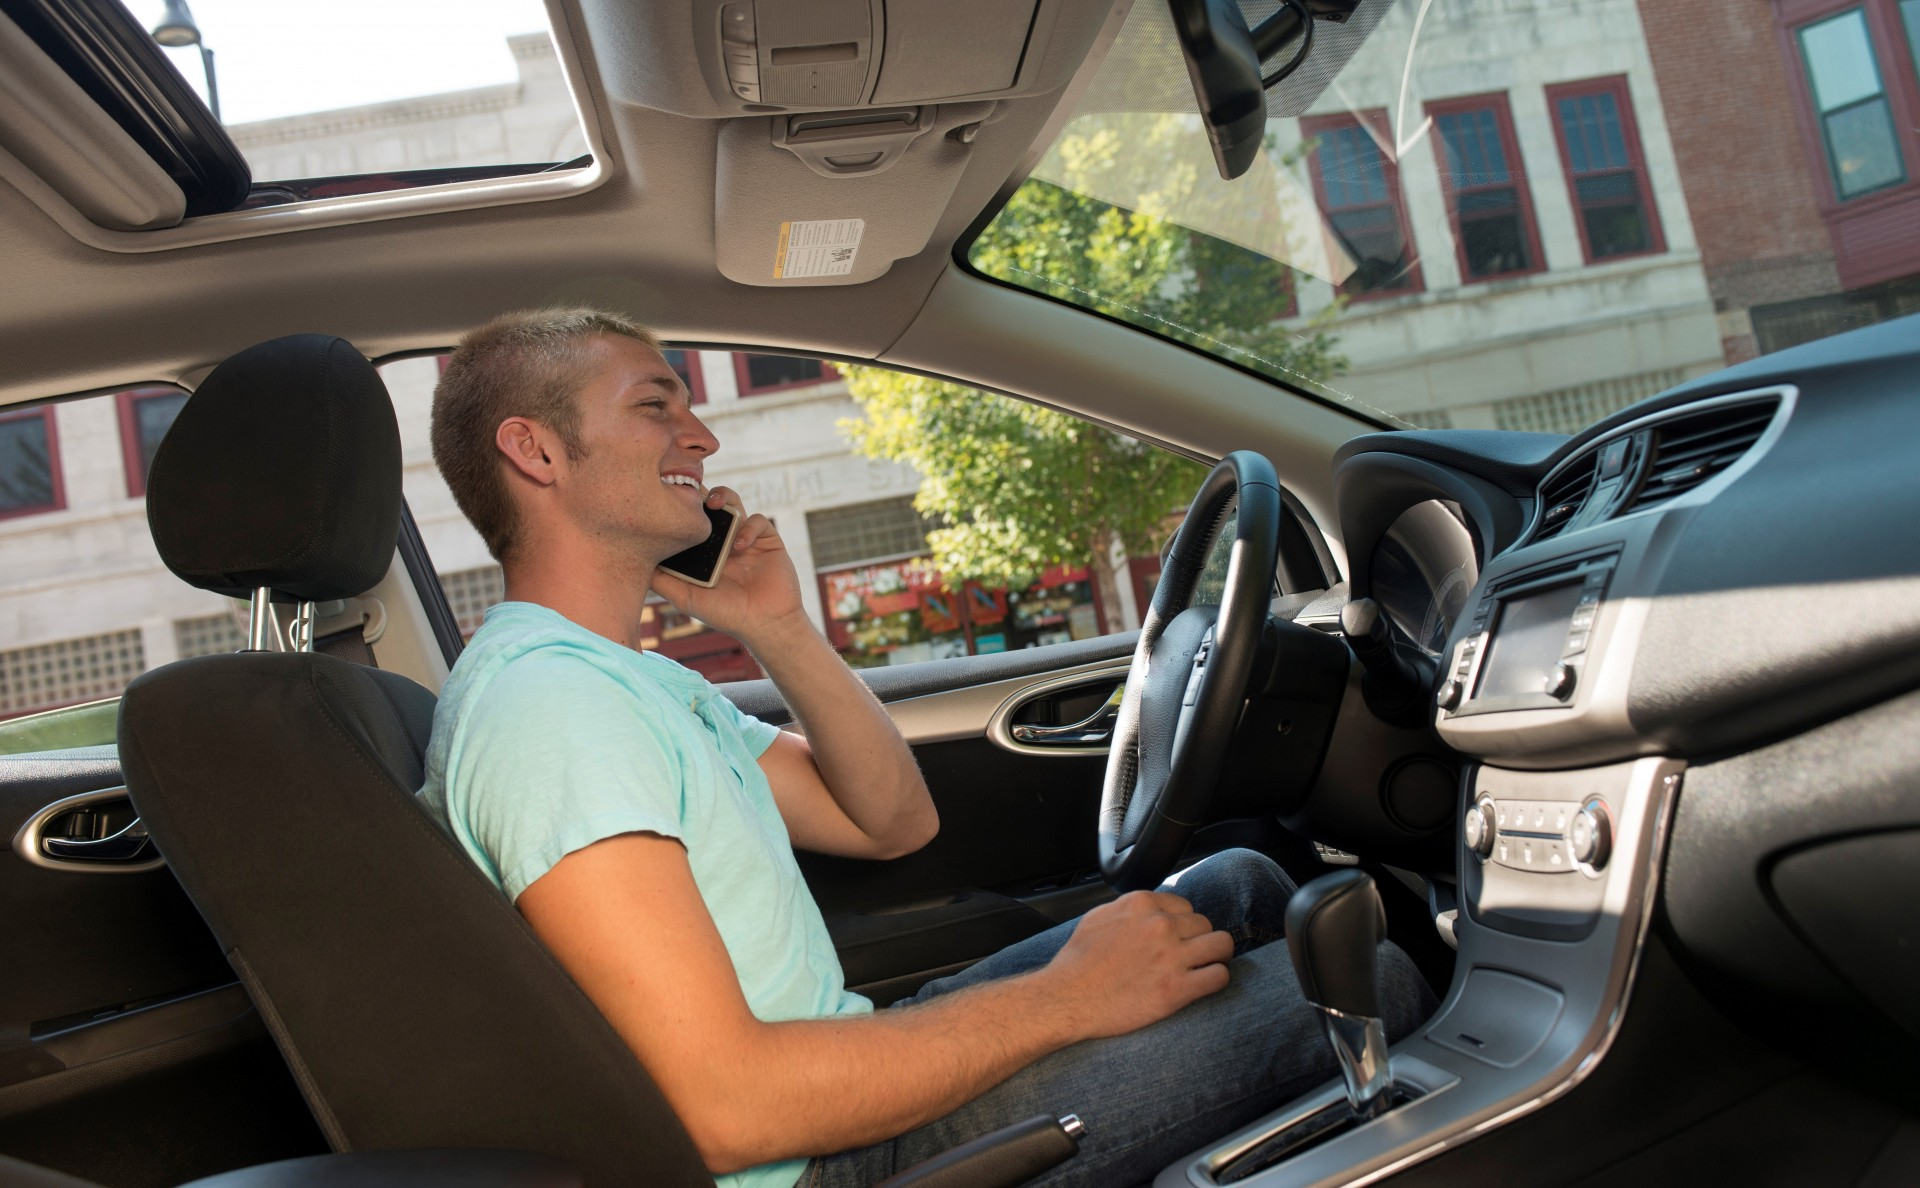 National Teen Driver Safety Week 2020